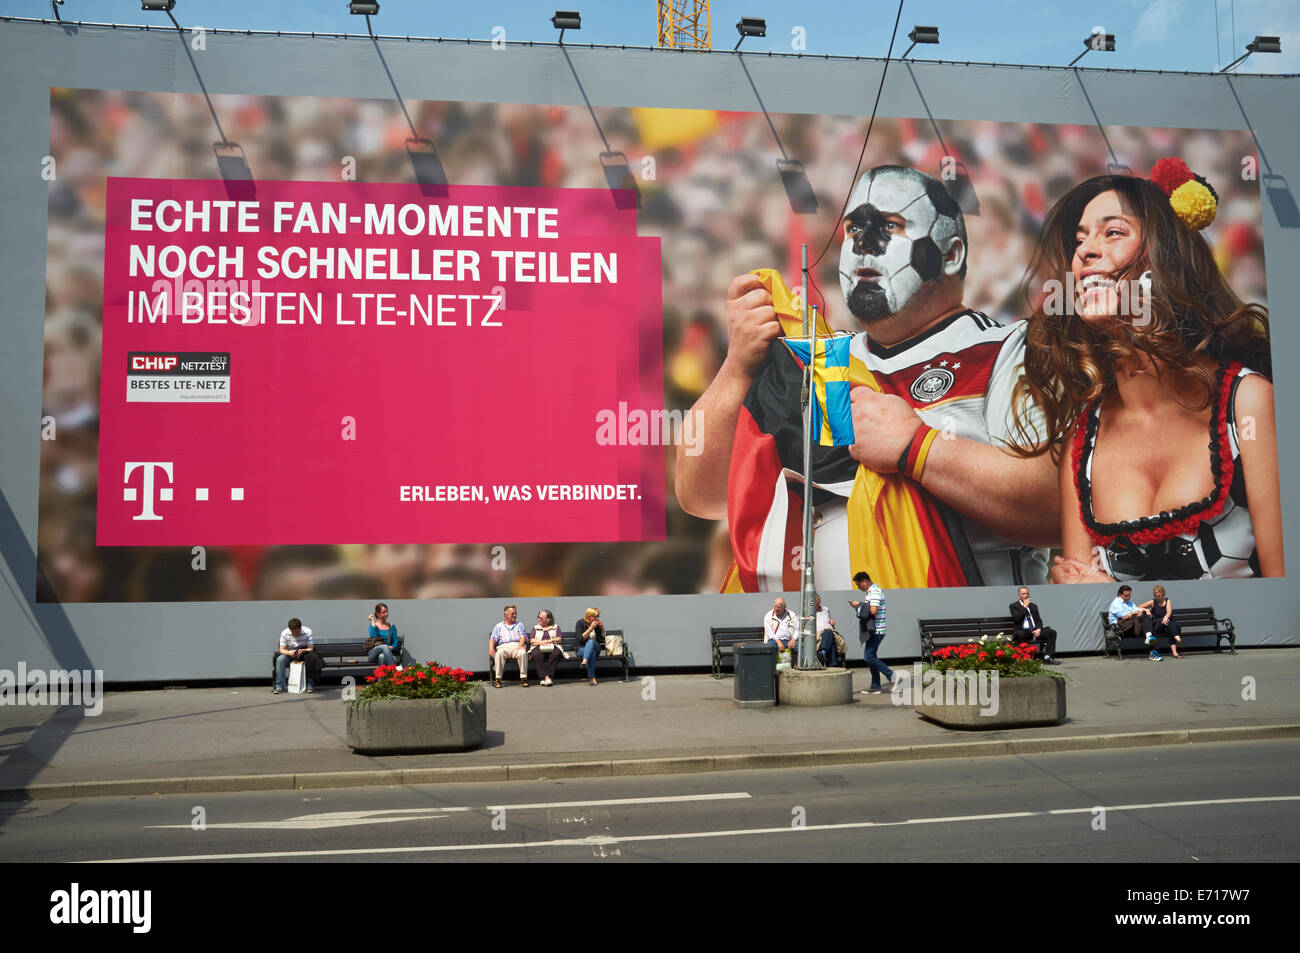 T Mobile billboard advert during the World Cup 2014, Dusseldorf, Germany. - Stock Image